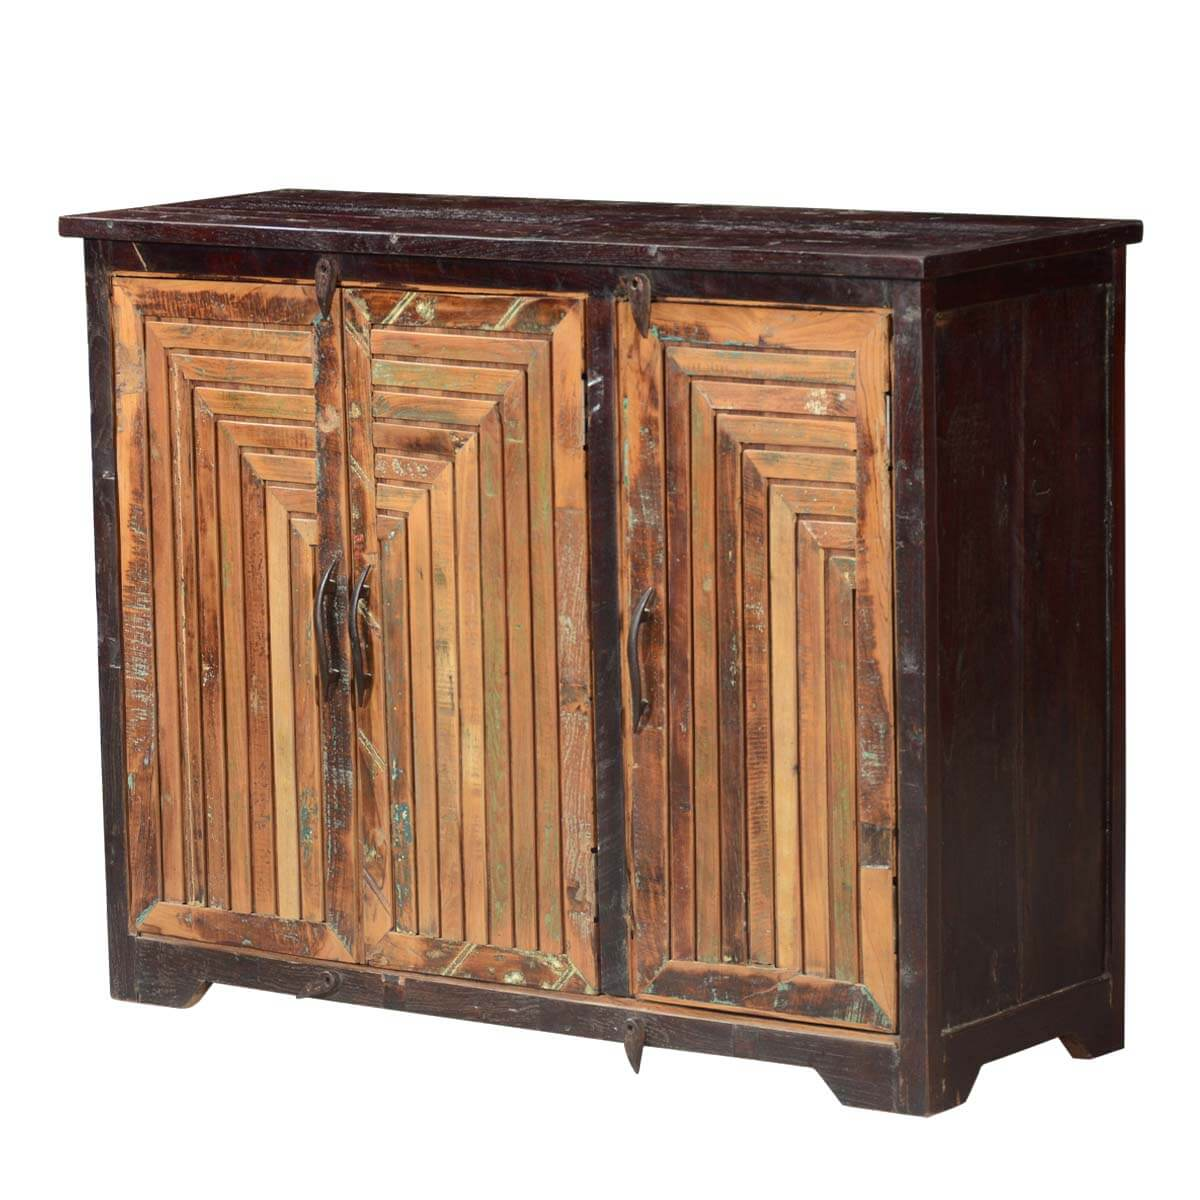 Sunburst reclaimed wood 3 door rustic storage buffet cabinet for Wood cabinets